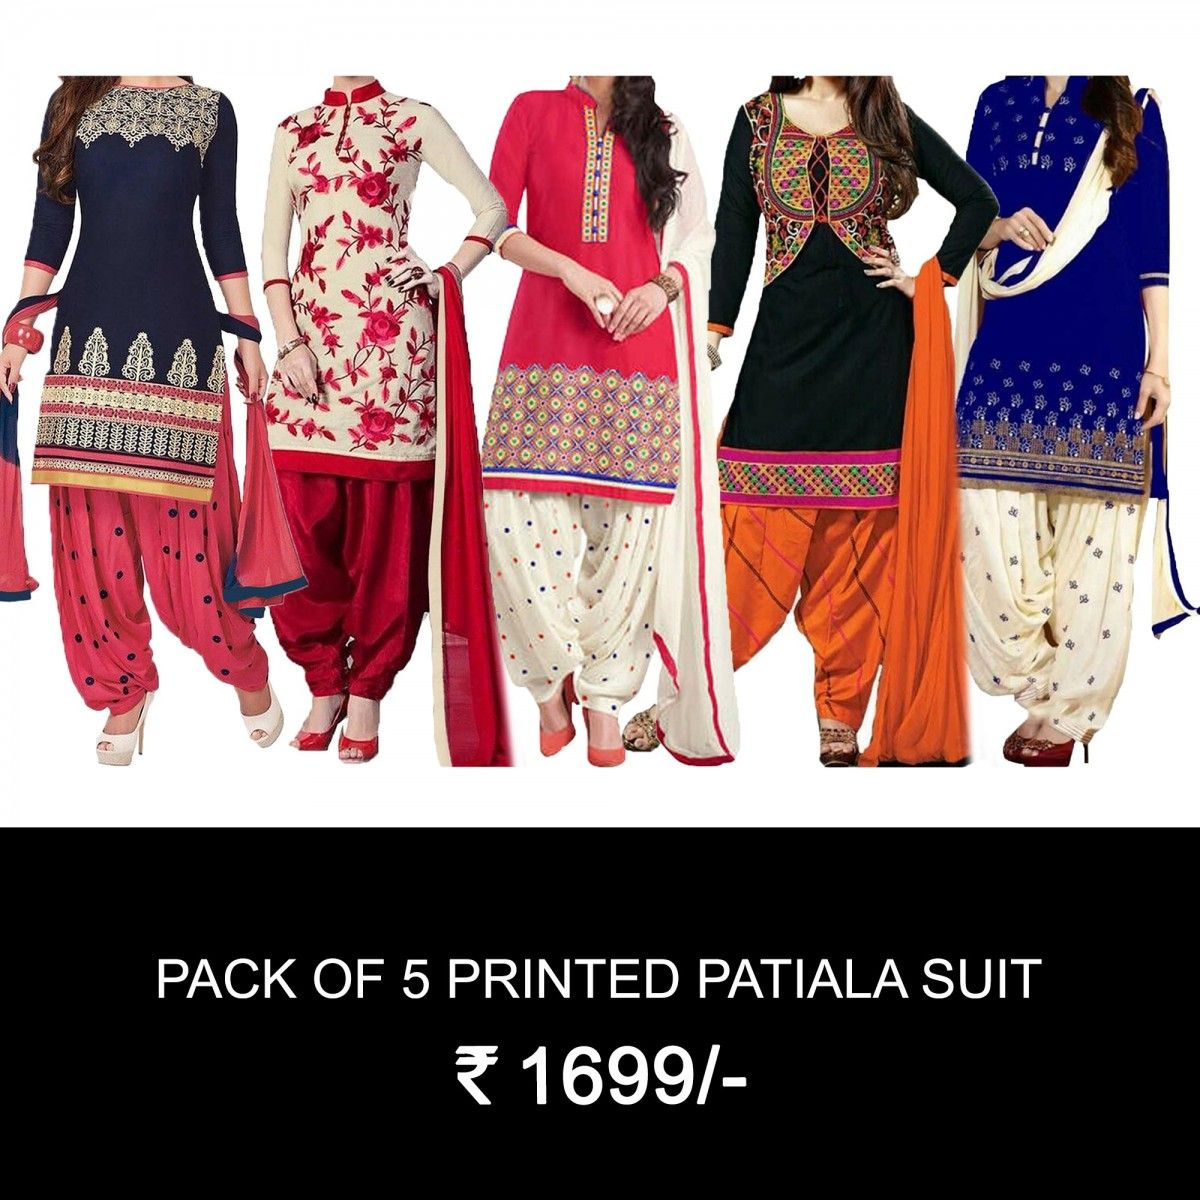 1c879d2554 Buy Pack Of 5 Printed Patiala Suit for womens online India, Best Prices,  Reviews - Peachmode